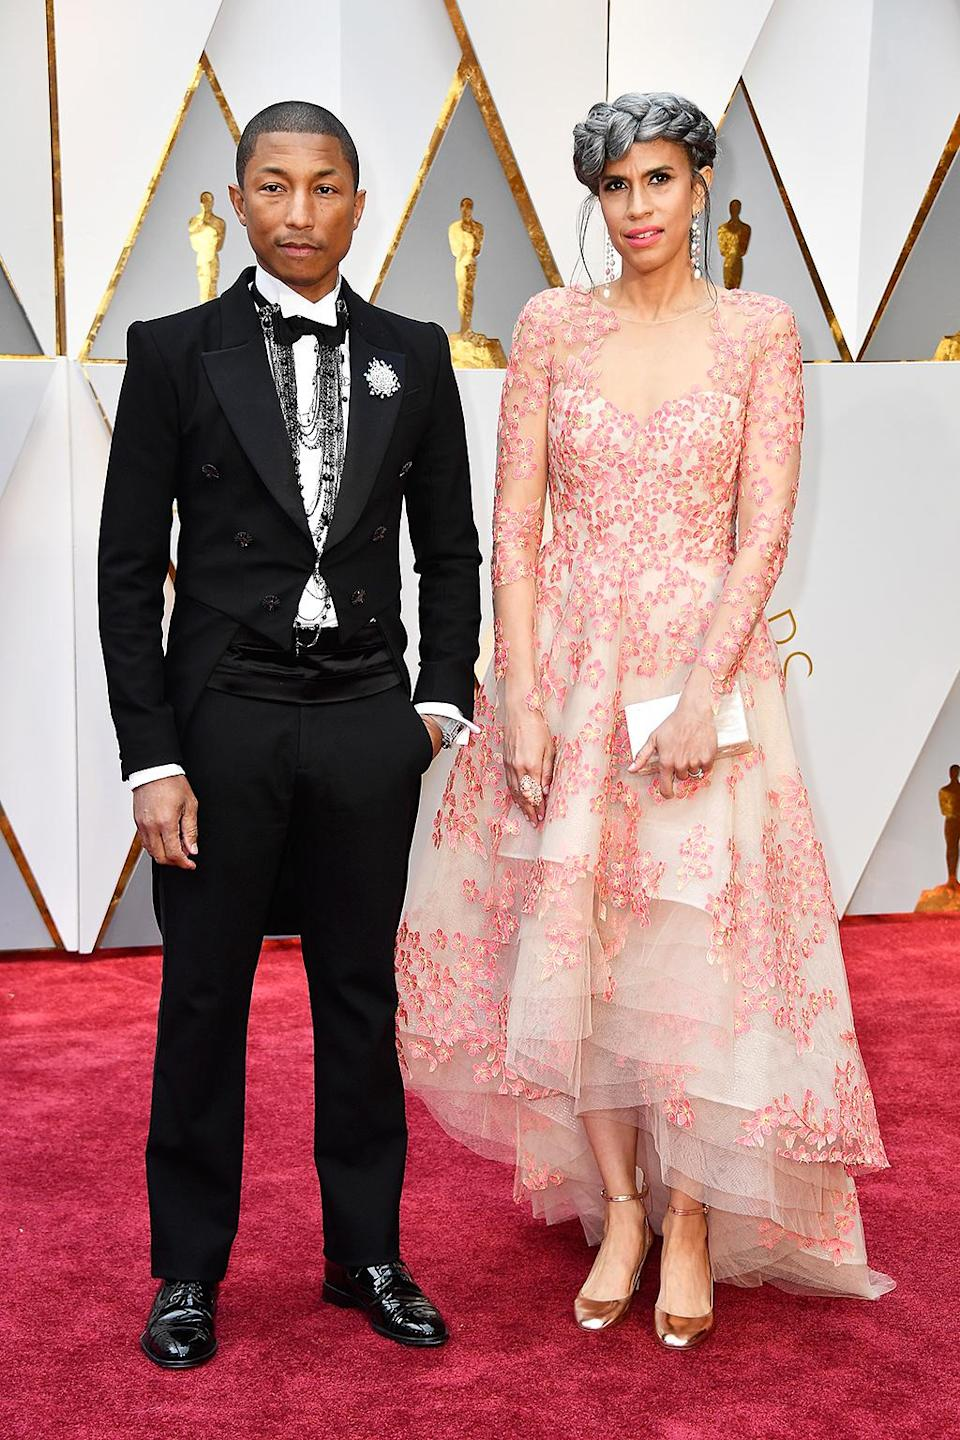 <p>Pharrell Williams and Mimi Valdes attend the 89th Annual Academy Awards at Hollywood & Highland Center on February 26, 2017 in Hollywood, California. (Photo by Frazer Harrison/Getty Images) </p>